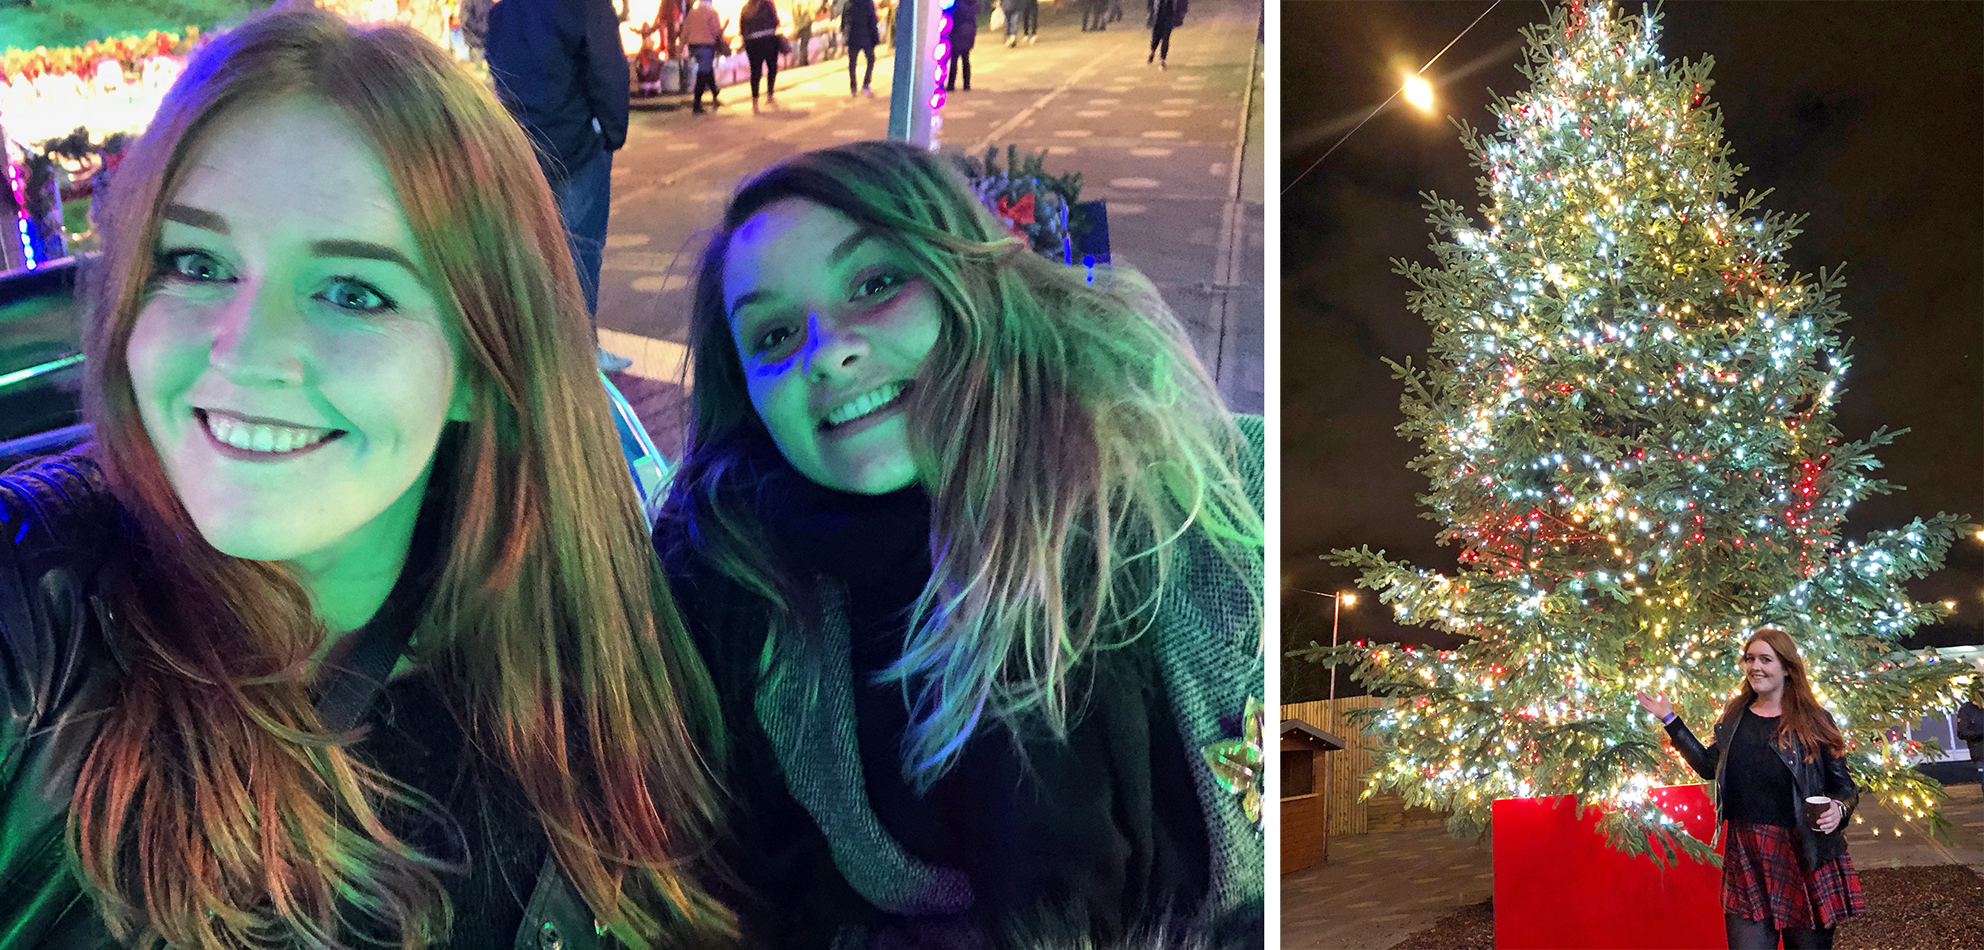 My friend Chan and I enjoying the fairground area, and me posing in front of the giant gorgeous Christmas tree